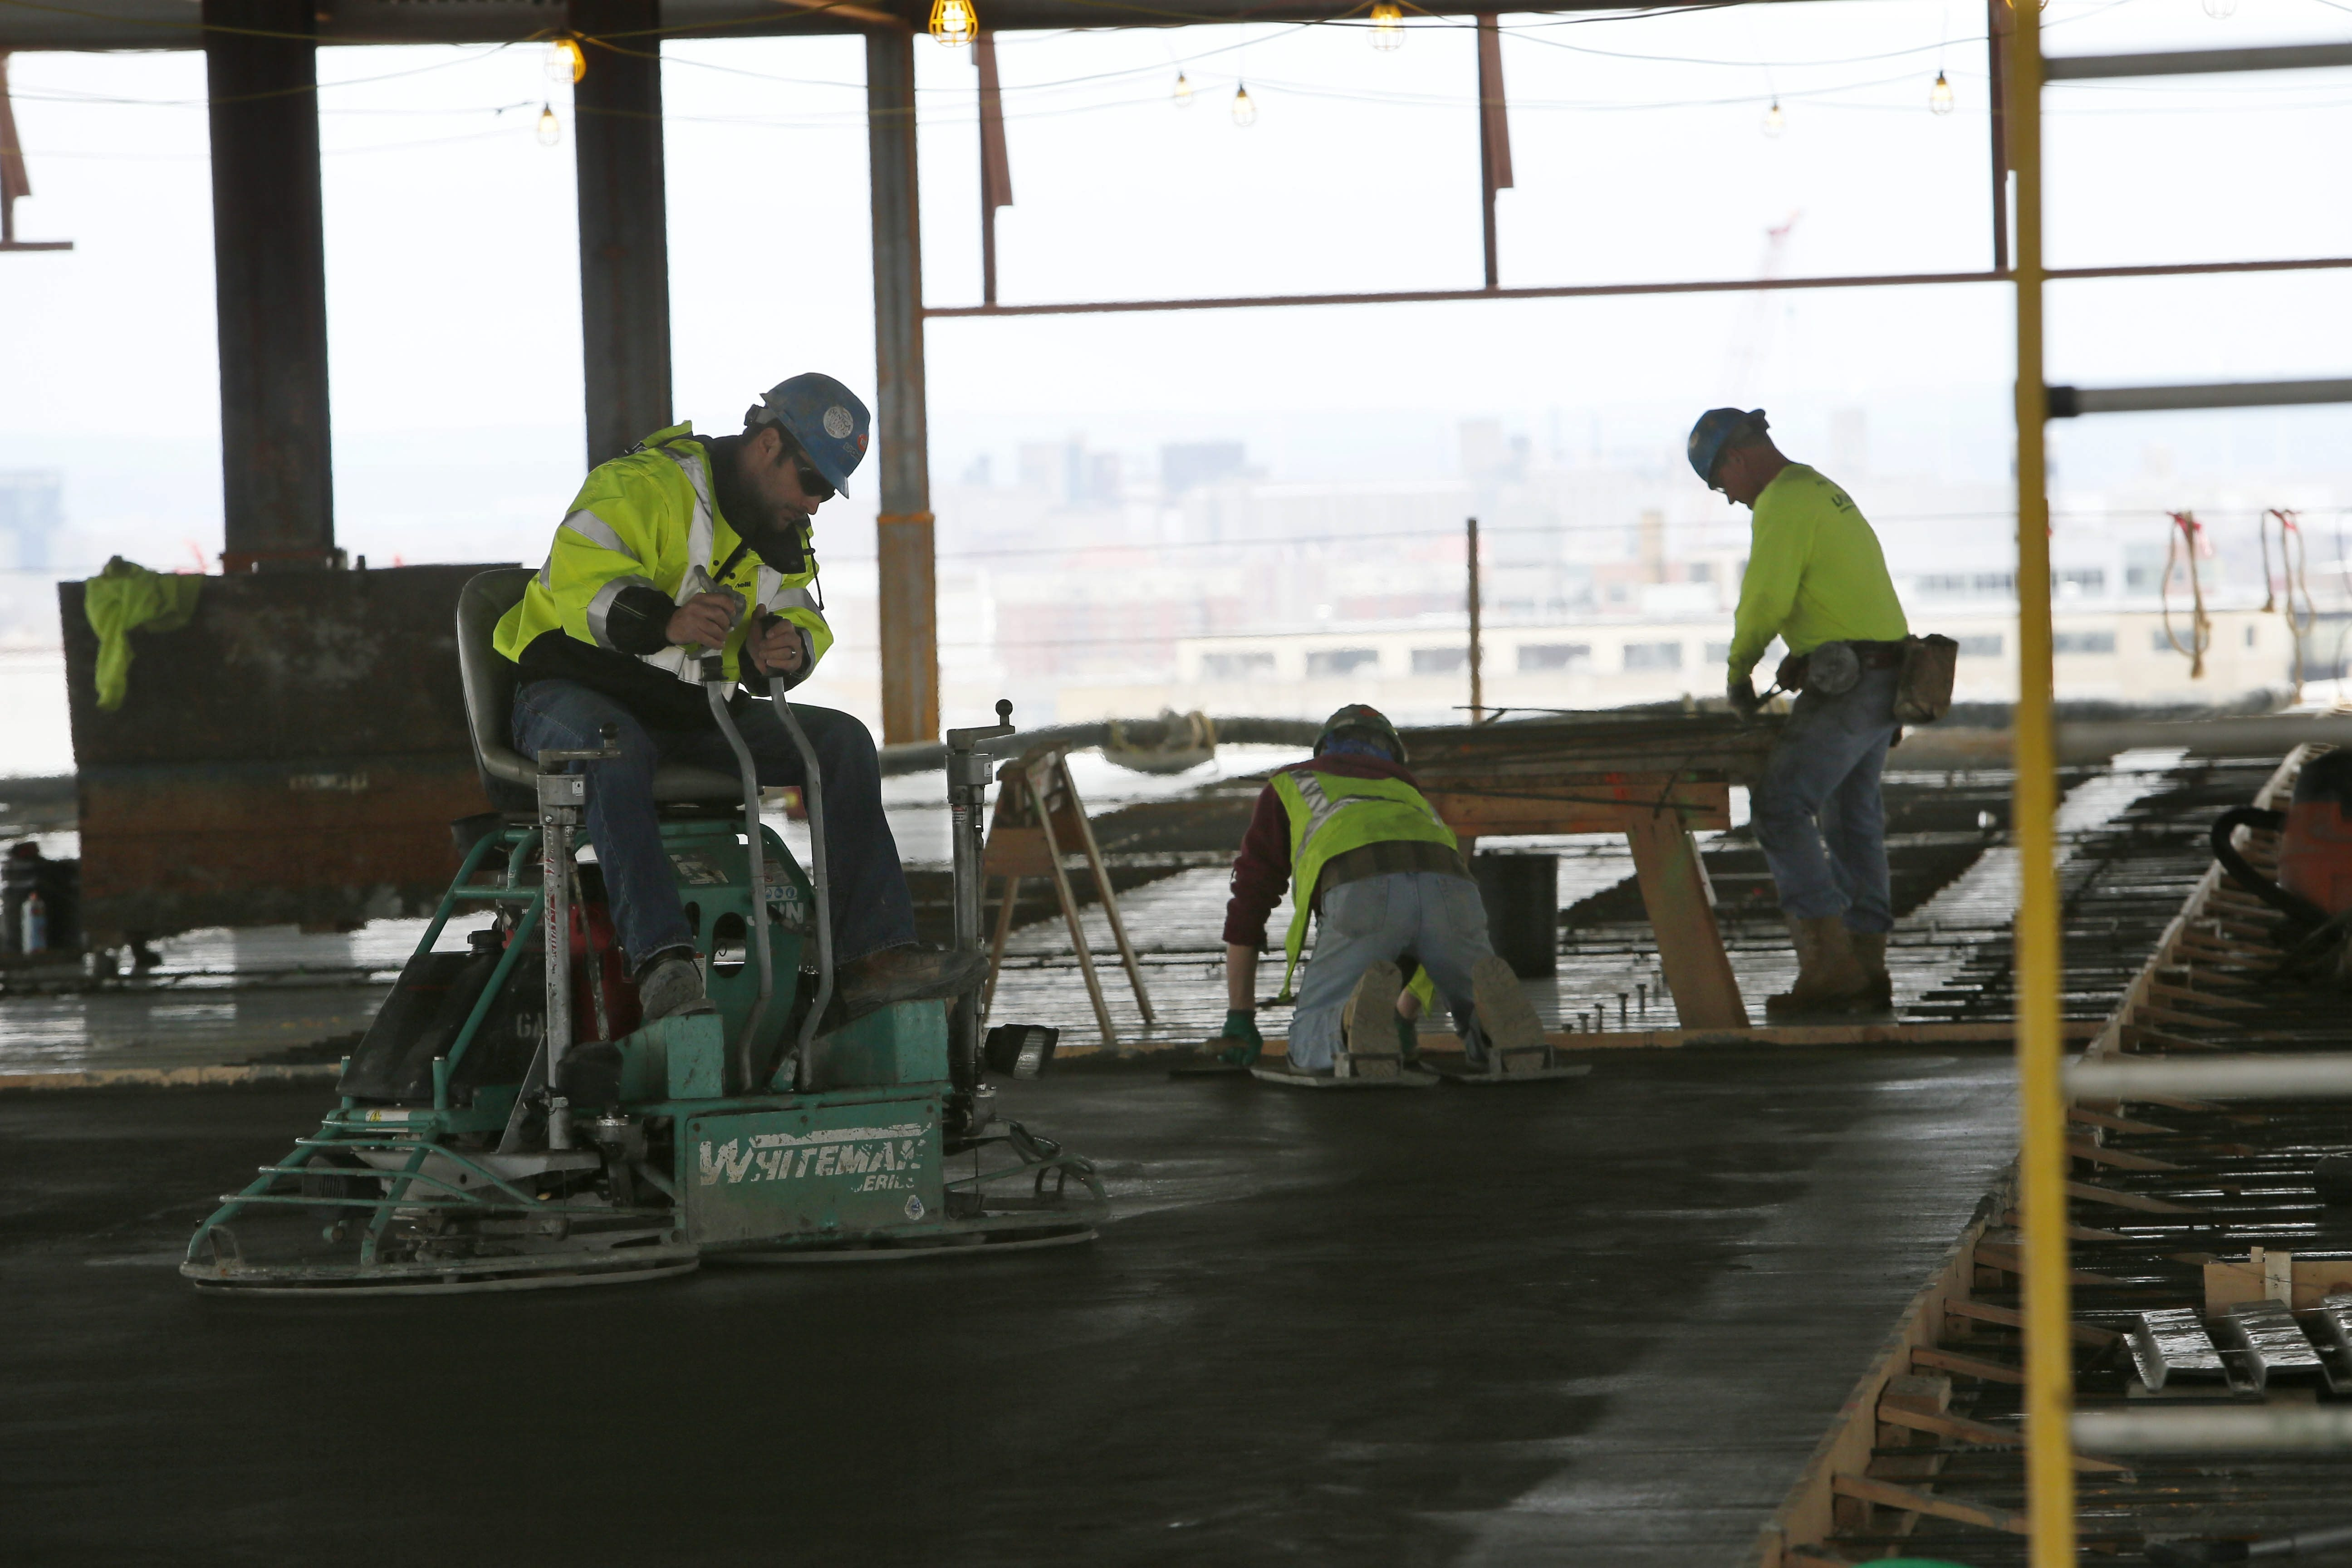 The Buffalo Niagara Medical Campus has continued to be a hotbed of regional construction, as that job sector, along with finan- cial services and health care, has helped brighten the local employment picture. December's uptick was the best in four months.